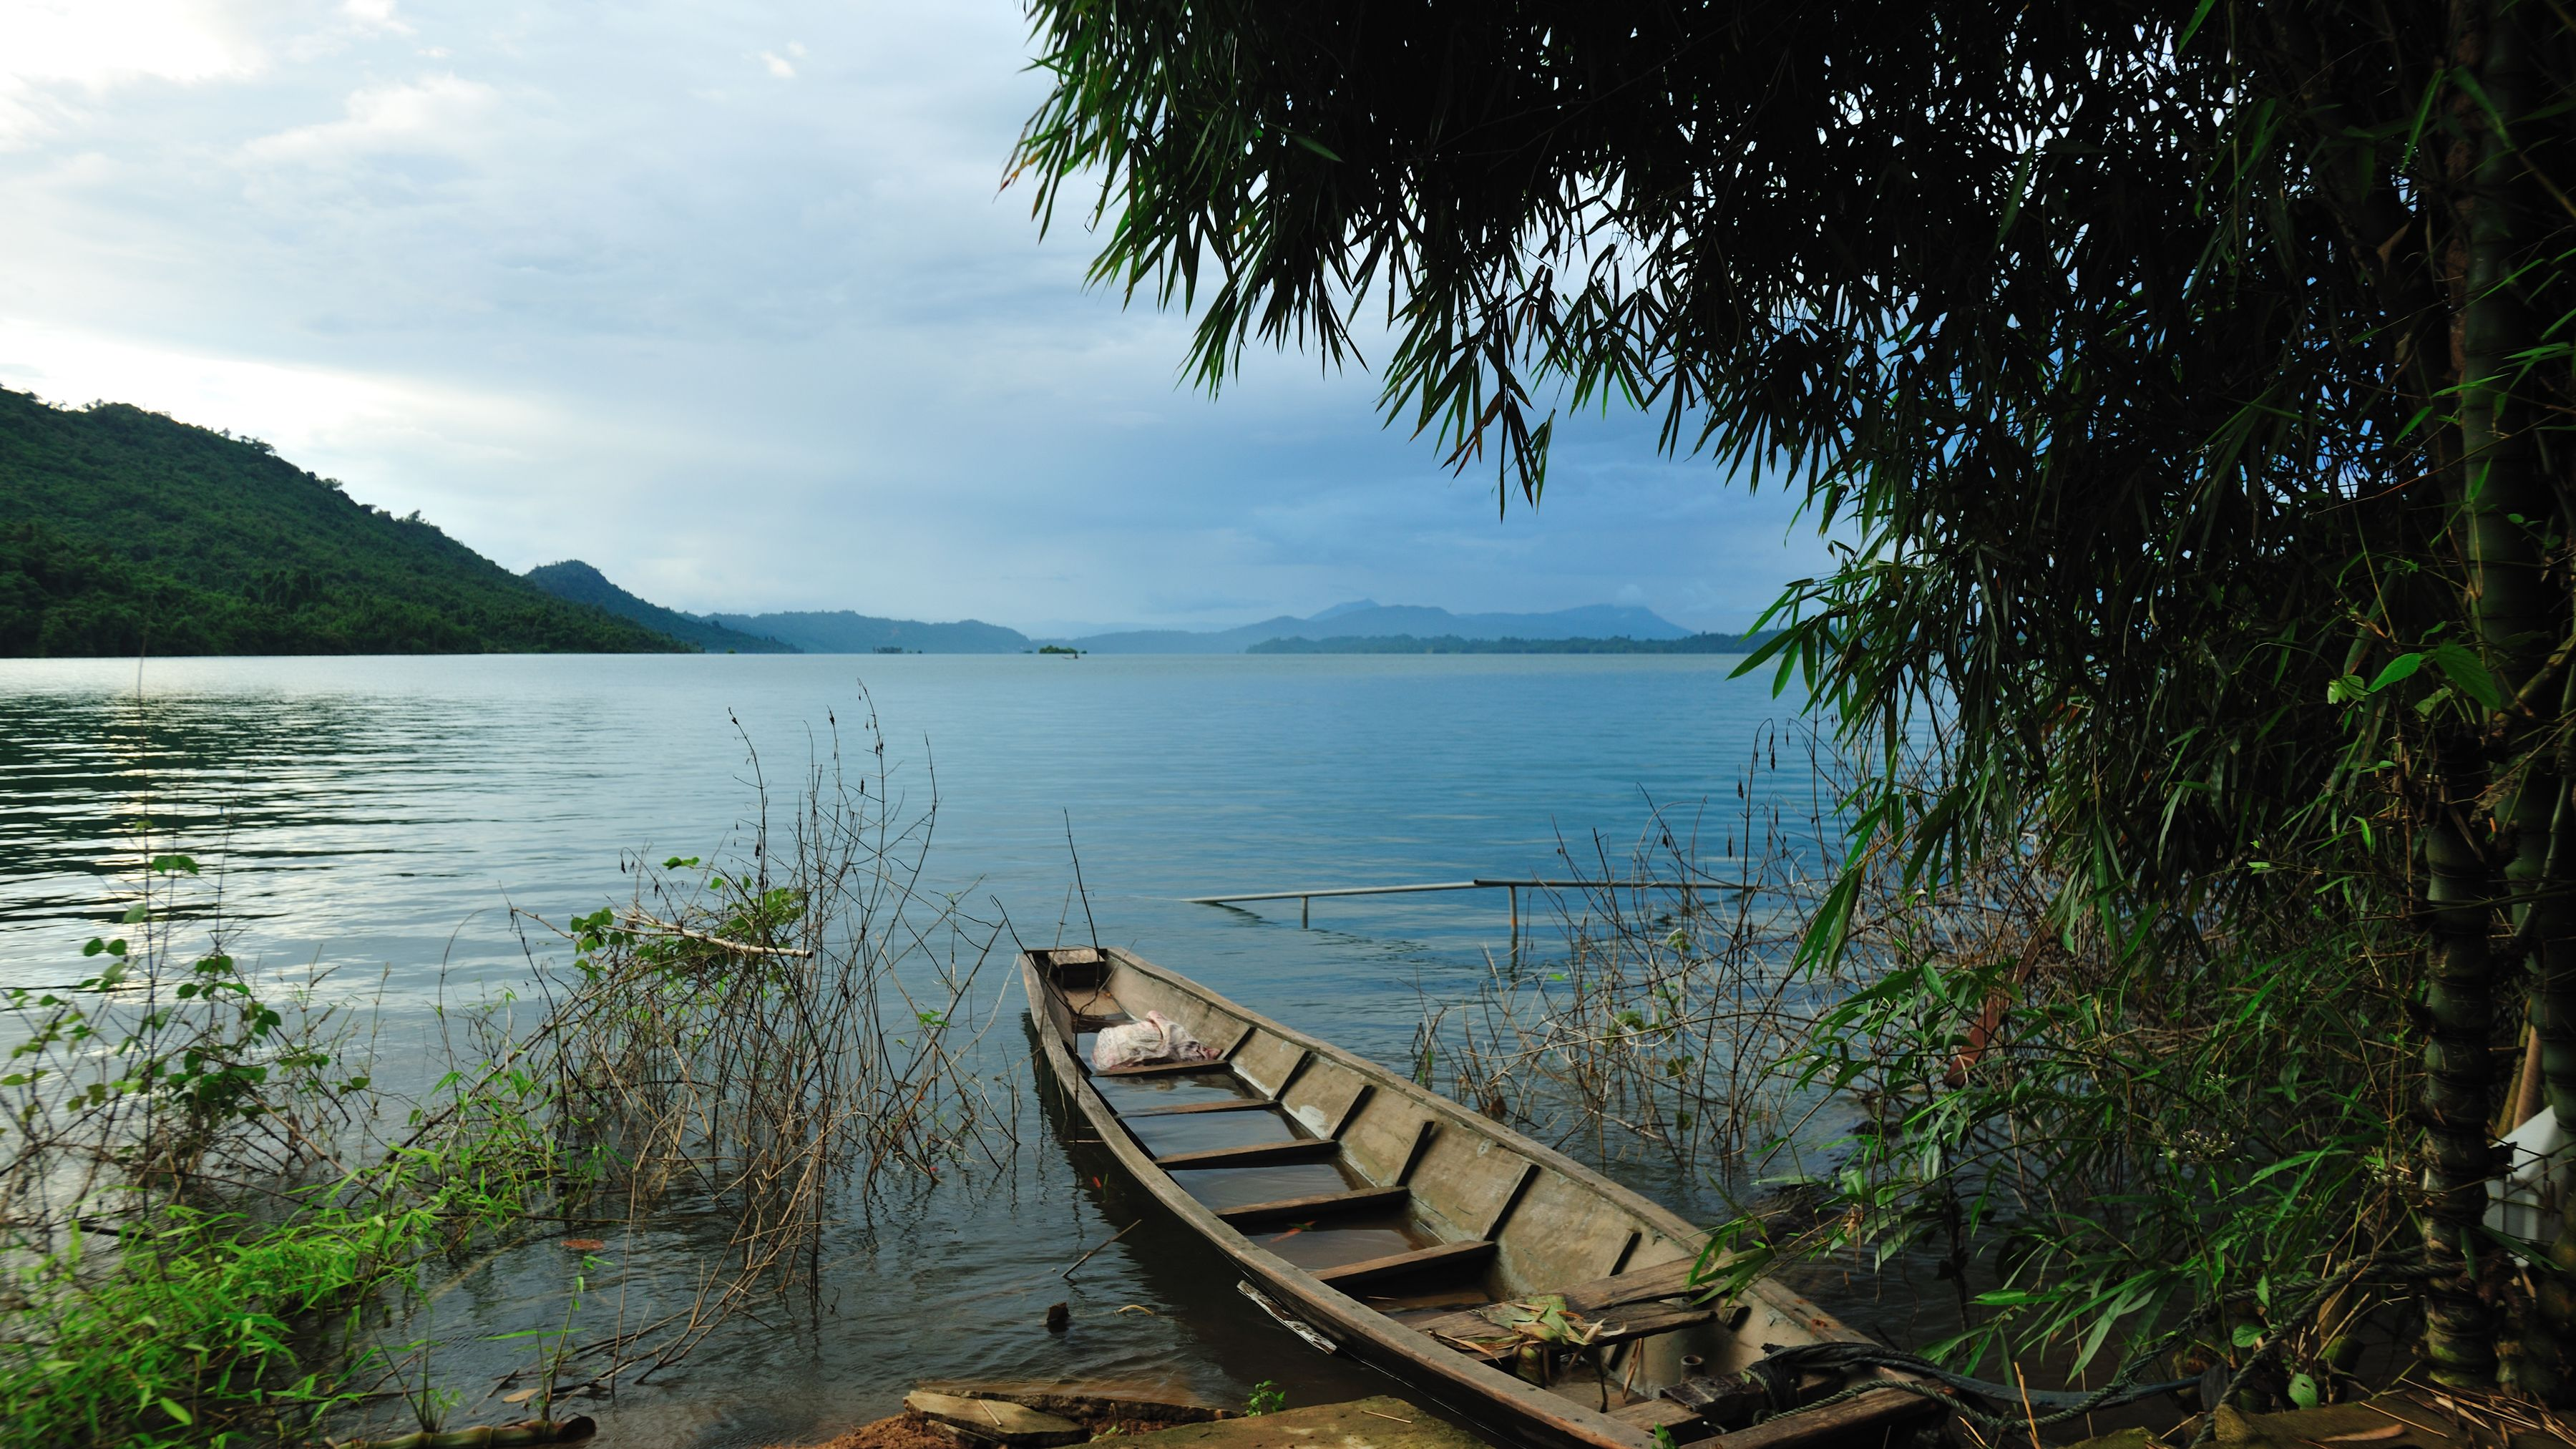 Boat on the shore of Laos river